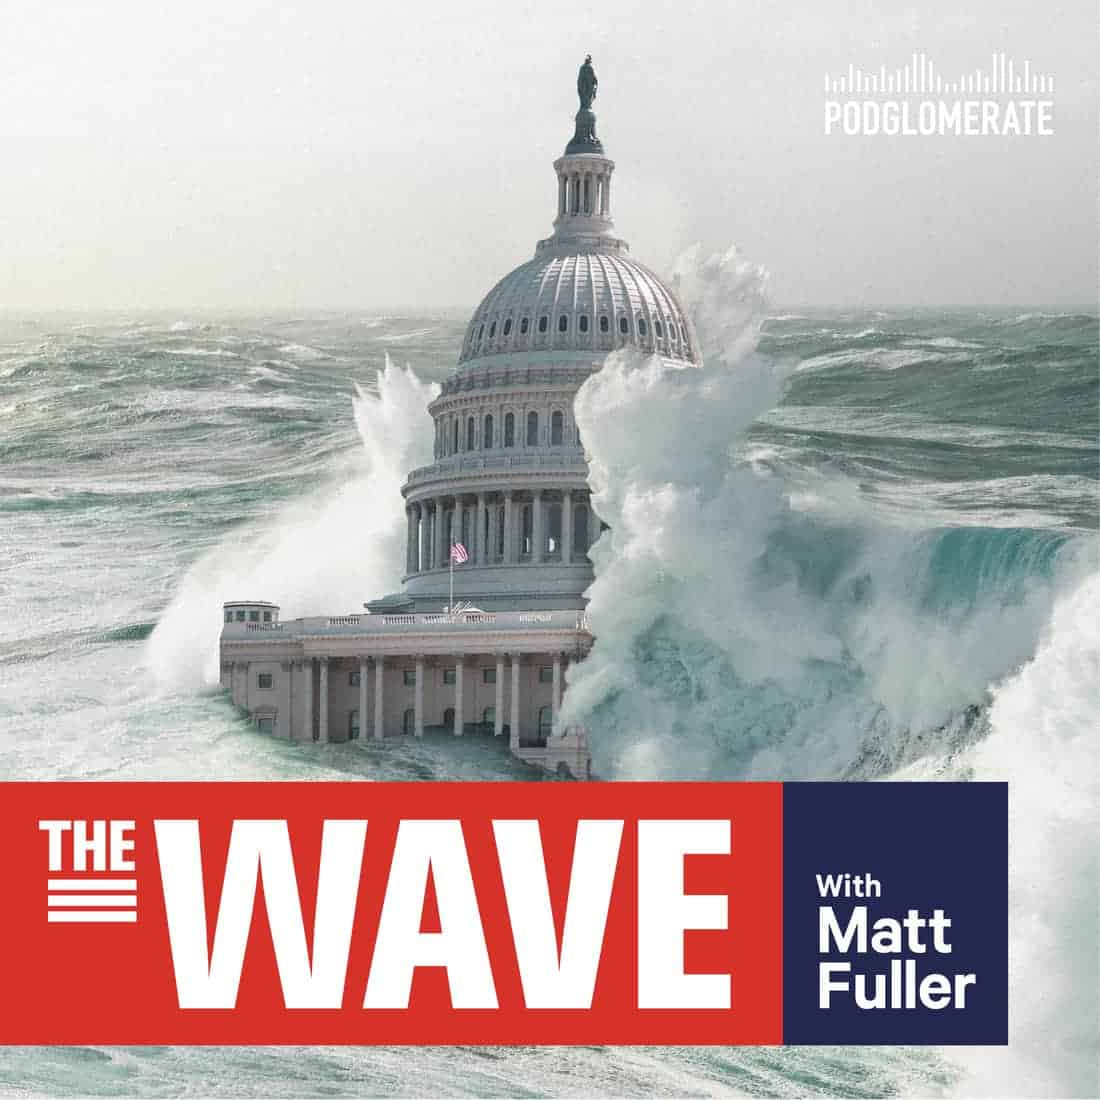 The Wave | The Podglomerate